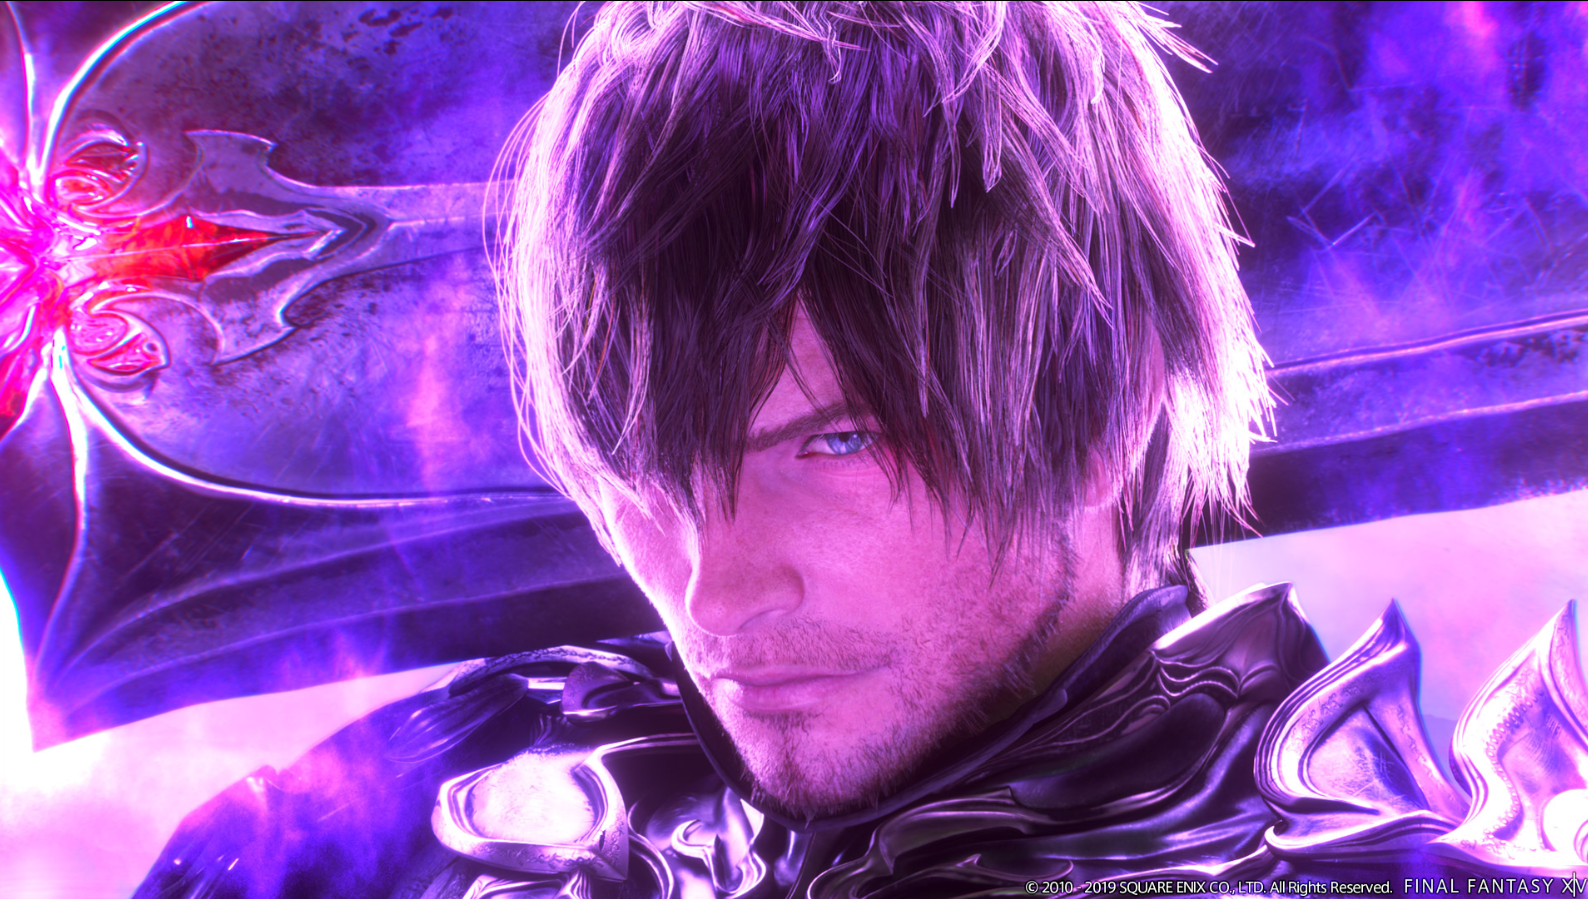 Final Fantasy XIV: Dad of Light Film Remake Gets Two New Commercials in Time for Father's Day